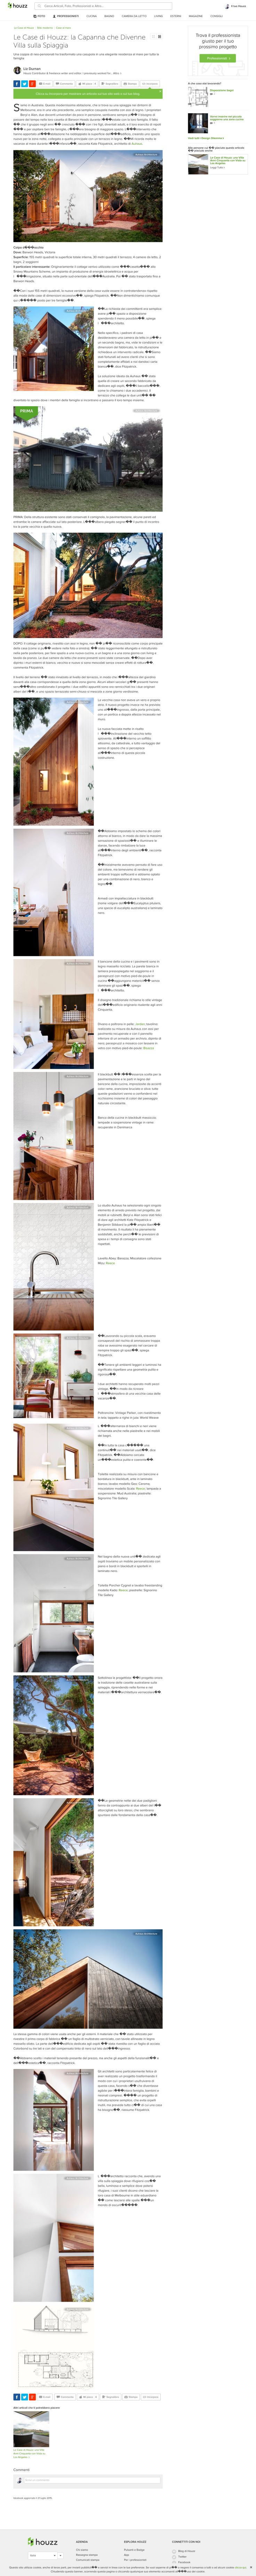 Website'http%3A%2F%2Fwww.houzz.it%2Fideabooks%2F47463063%3Futm_source%3DHouzz%26utm_campaign%3Du1530%26utm_medium%3Demail%26utm_content%3Dgallery7' snapped on Page2images!